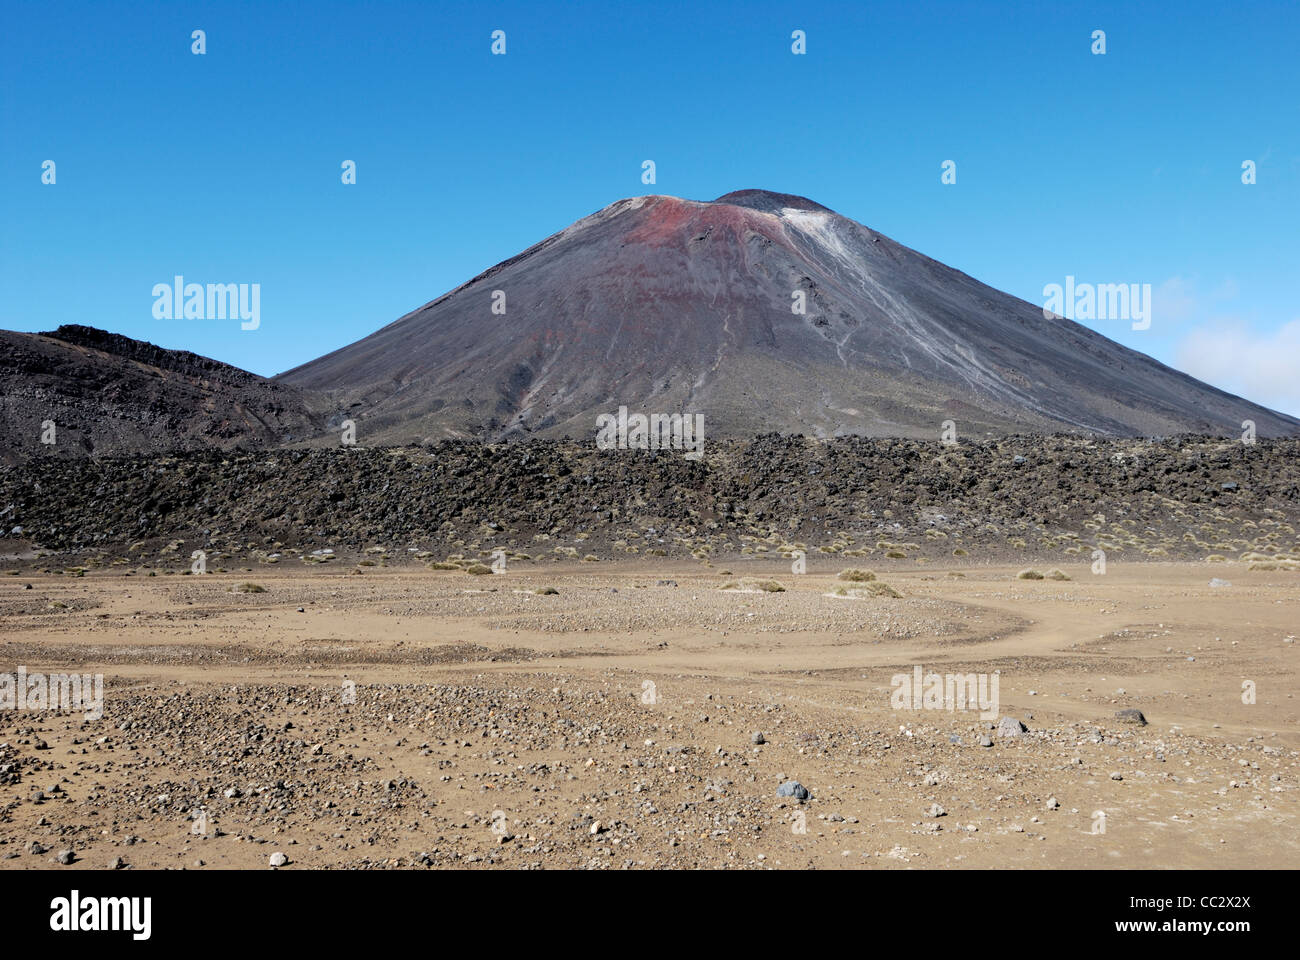 Mount Ngauruhoe viewed from South Crater. World Heritage Site, Tongariro National Park, New Zealand - Stock Image